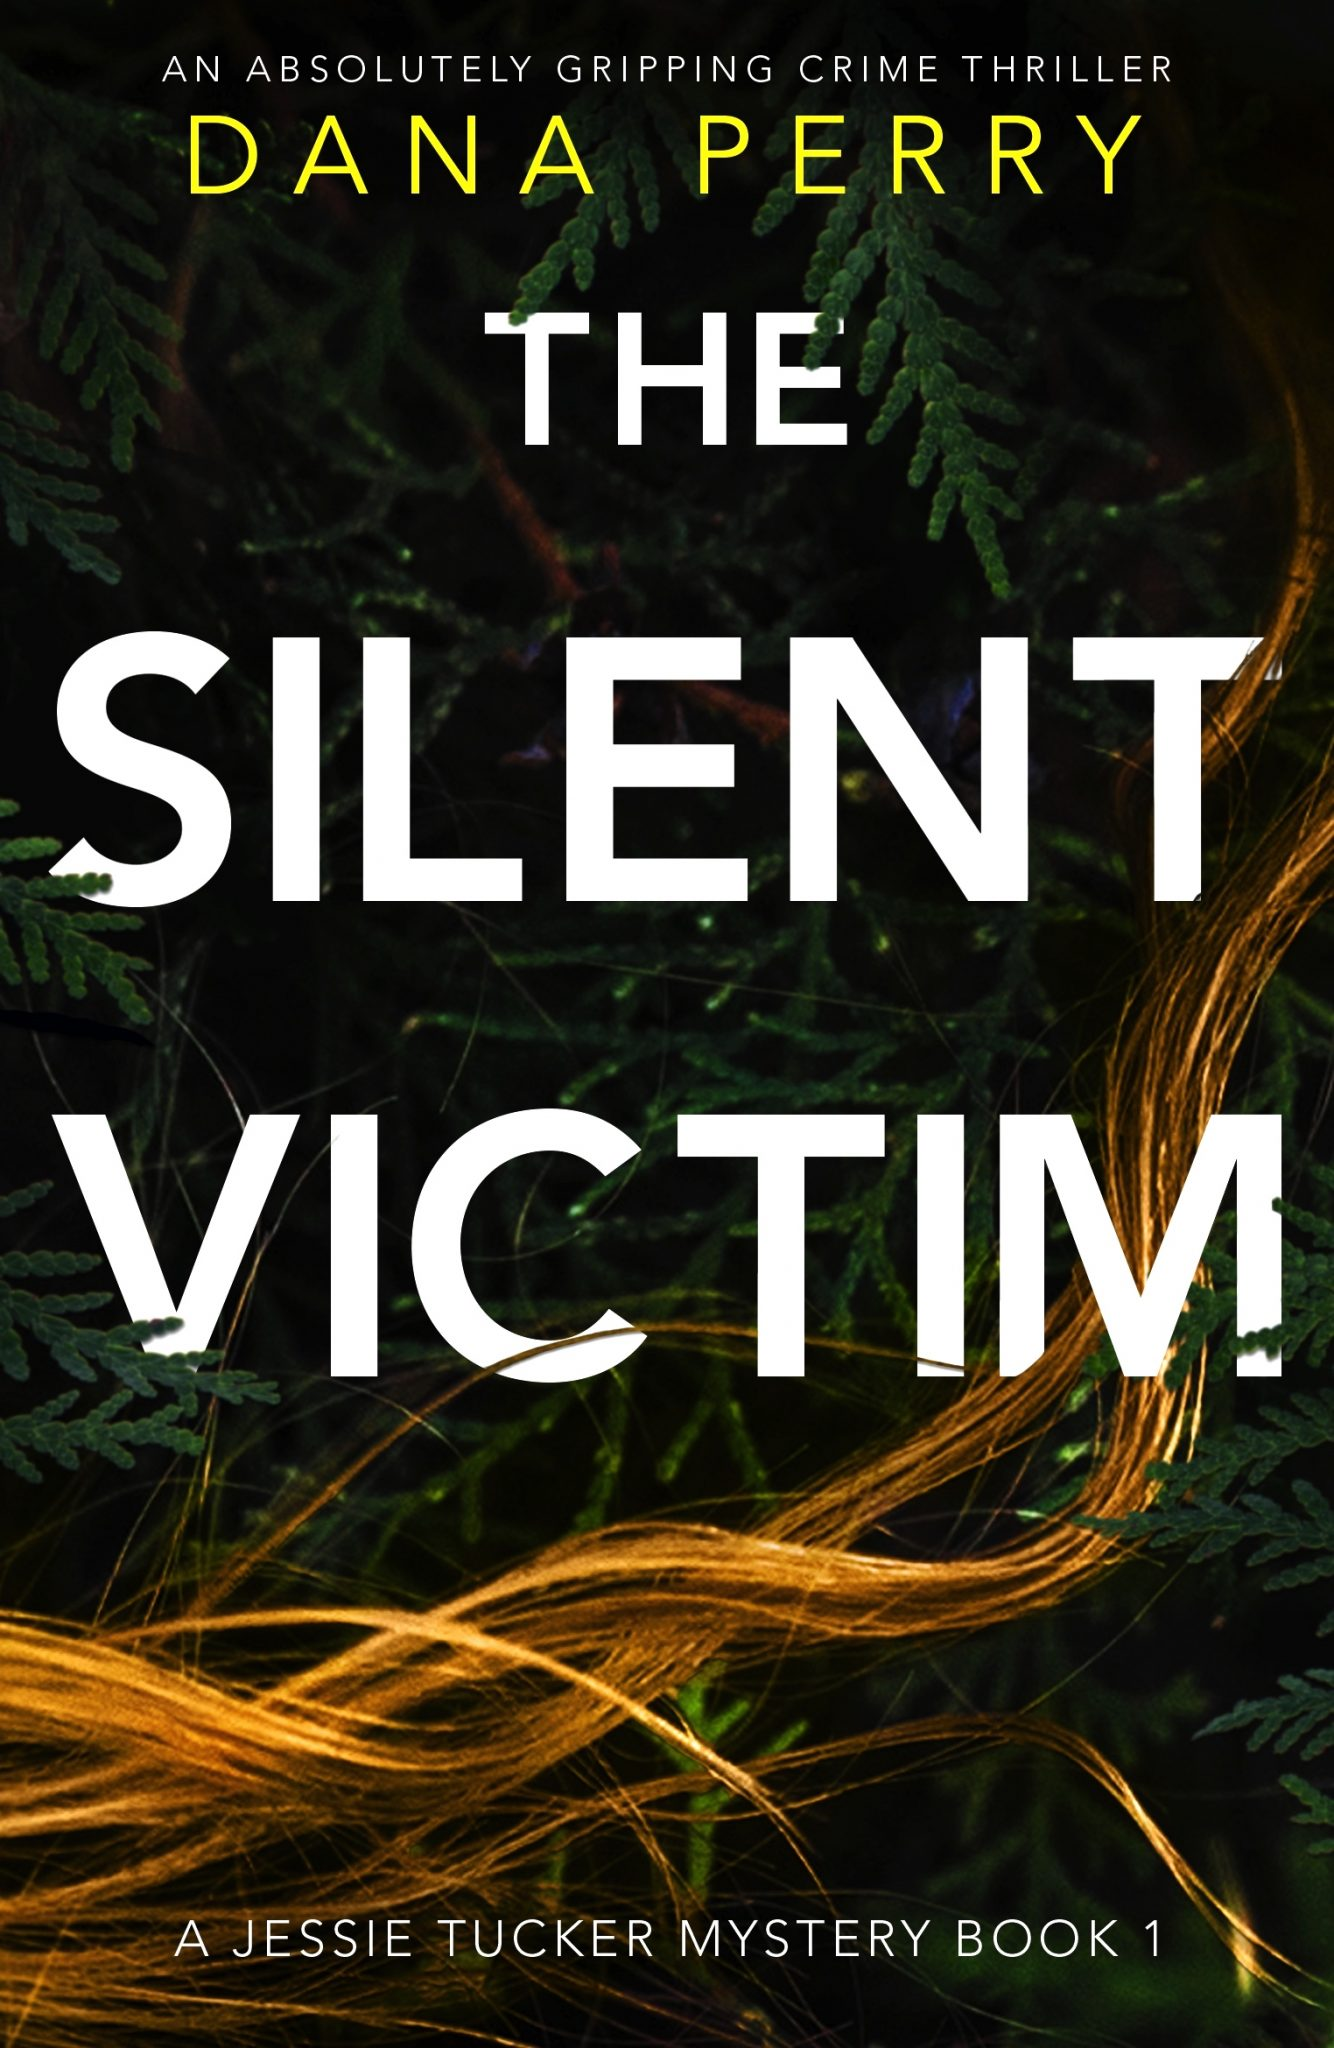 The Silent Victim by Dana Perry